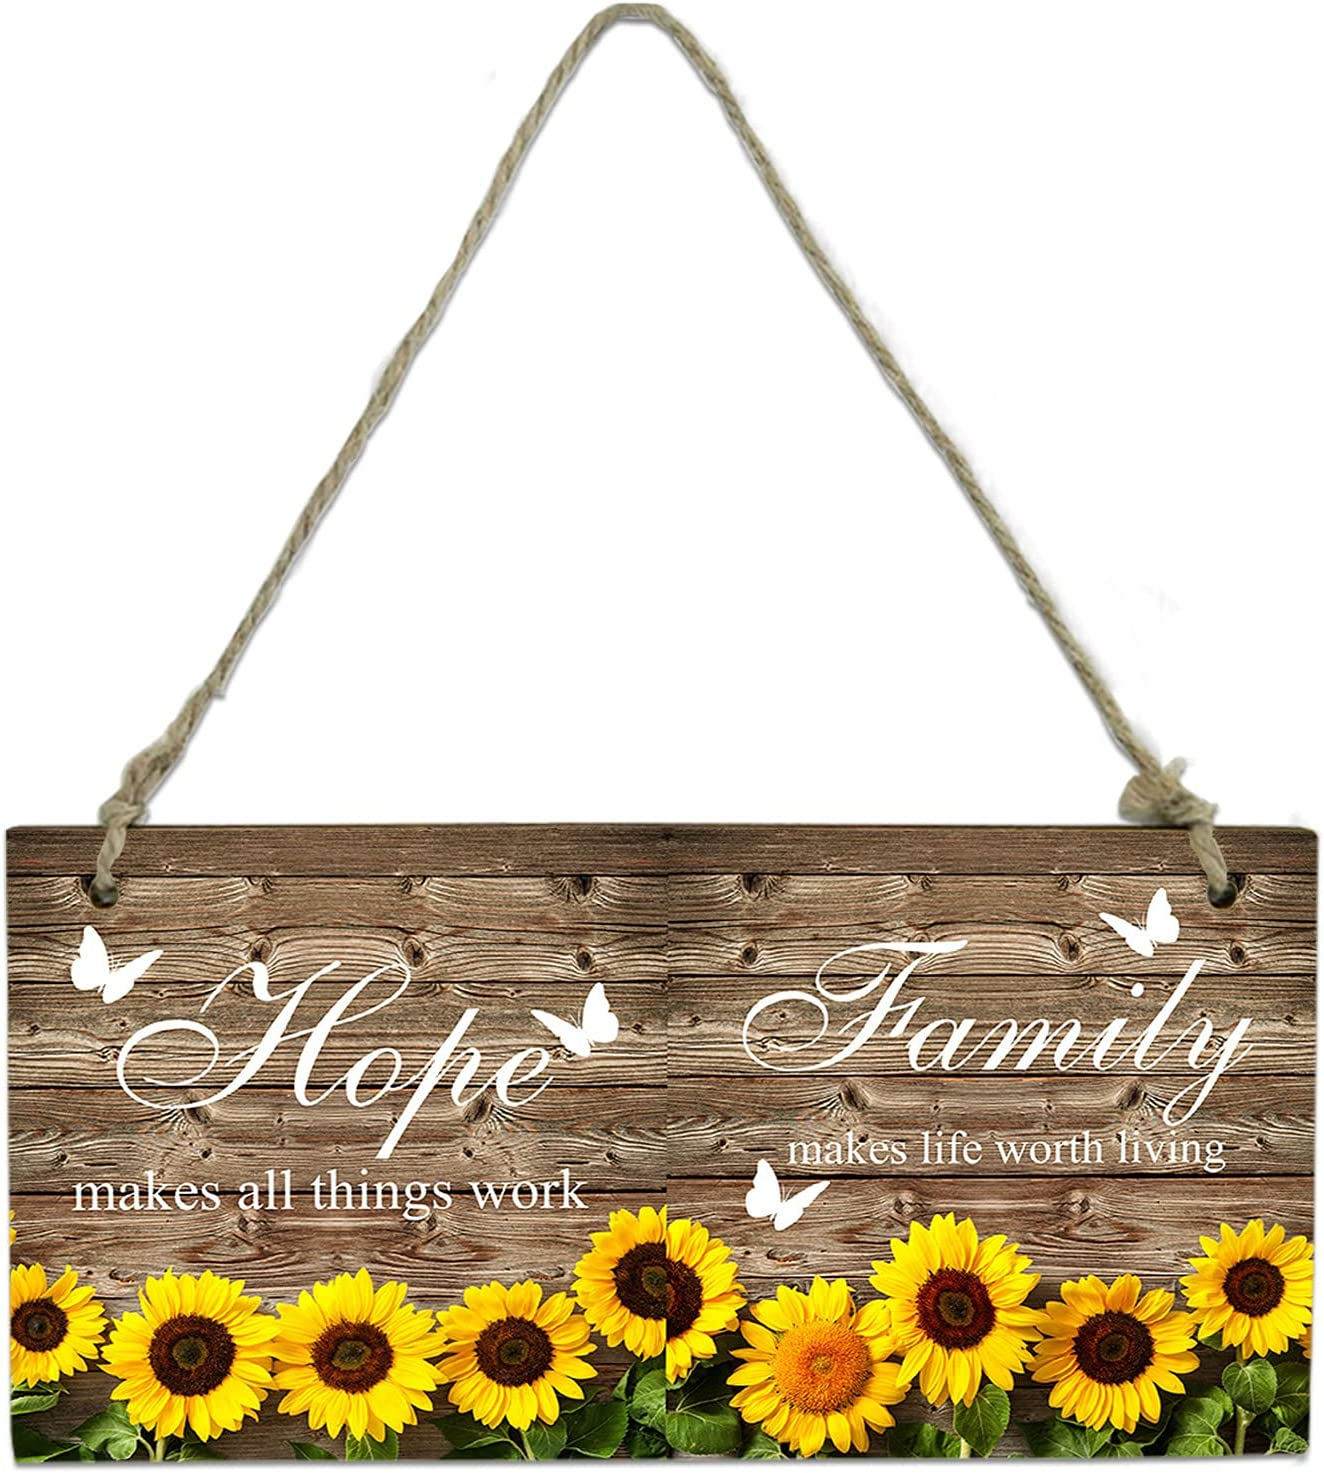 Wood Plaque Wall Hanging Sign for Sun Farmhouse Manufacturer direct delivery Kitchen Bathroom Max 80% OFF